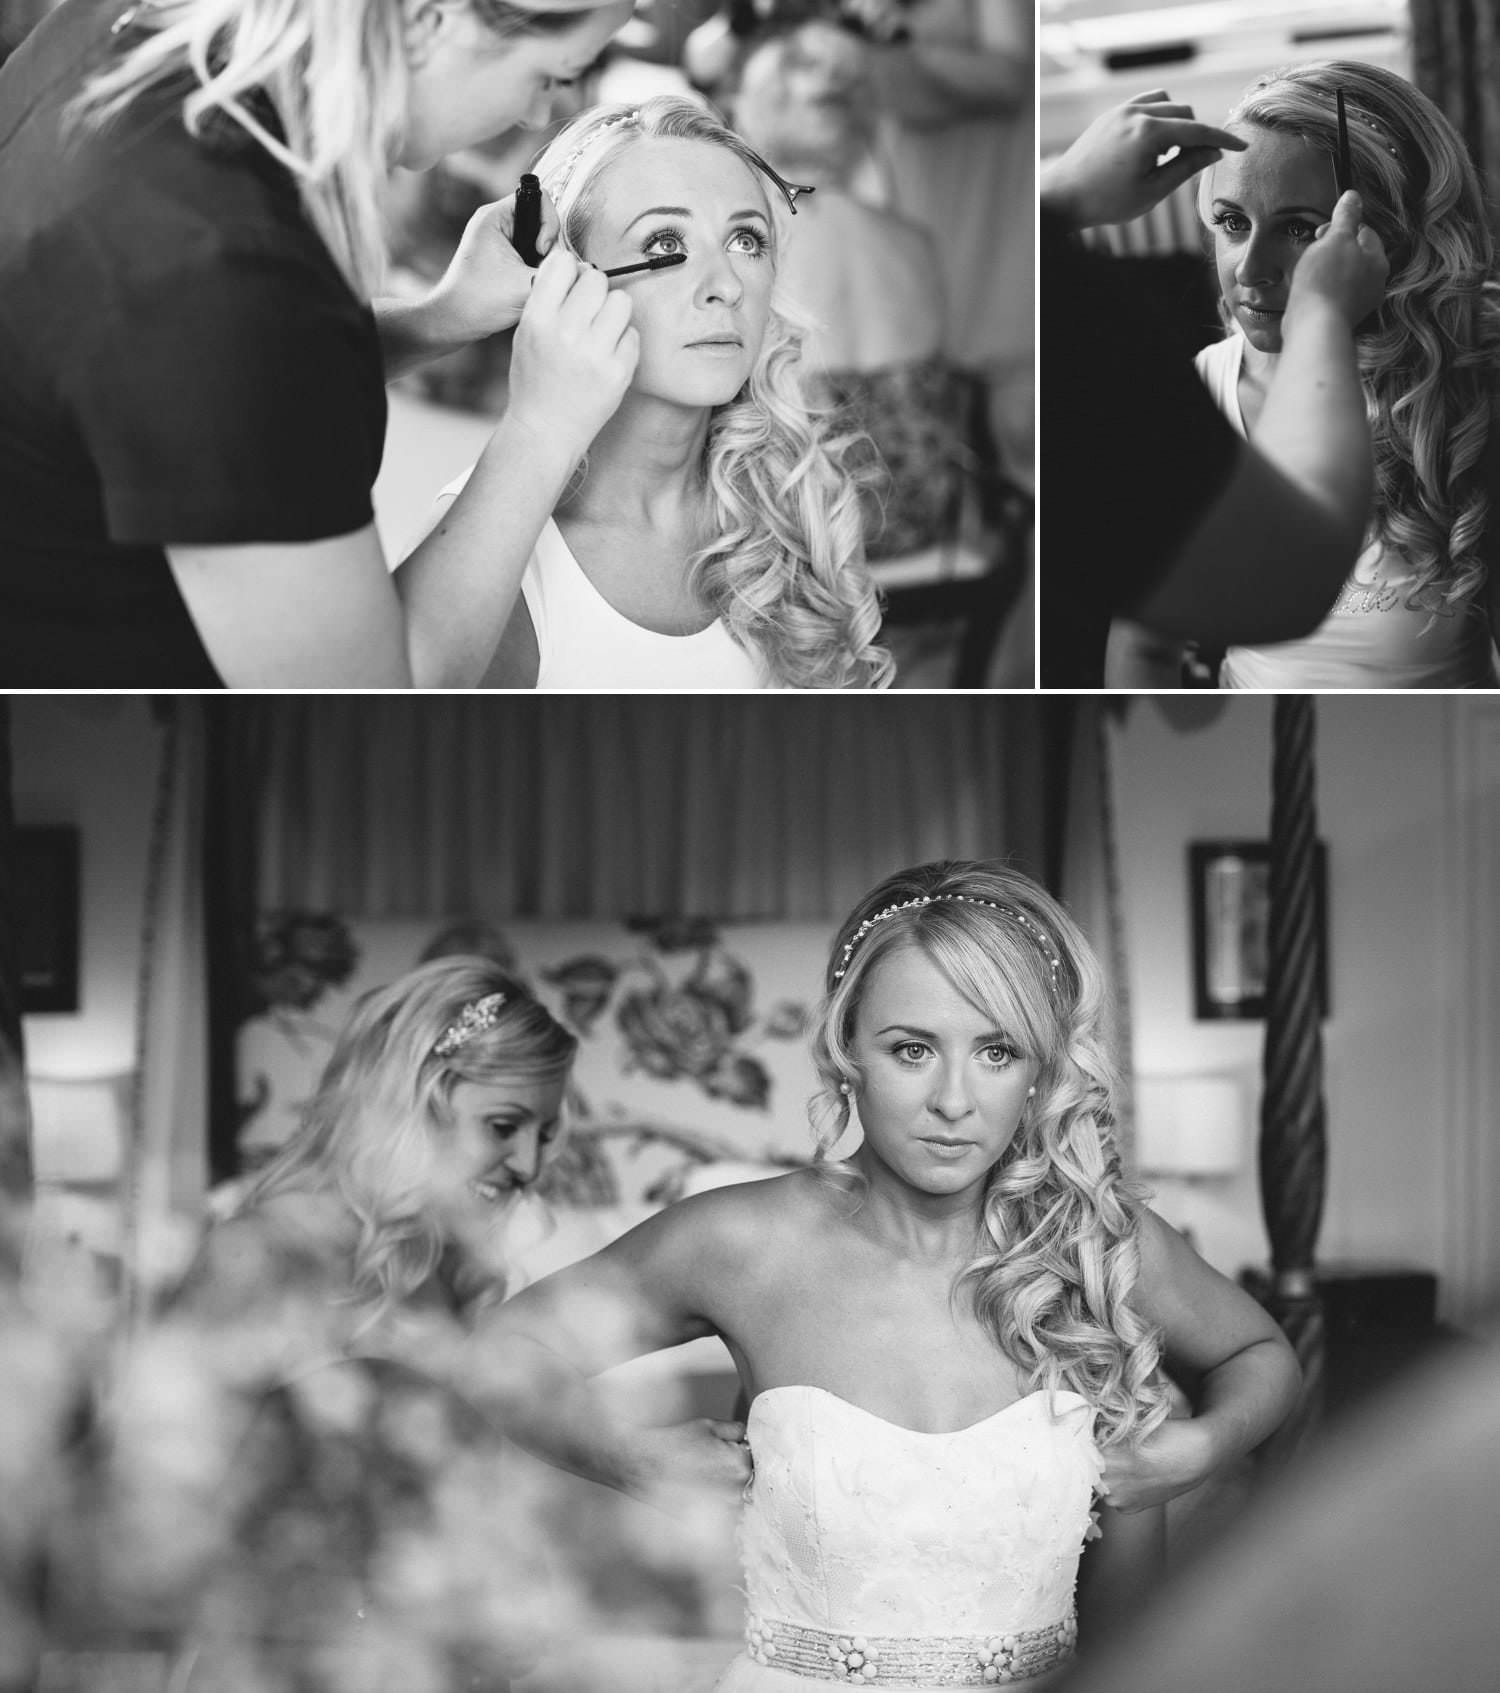 Wedding Photography in black and white of bride getting ready for her wedding at Iscoyd Park